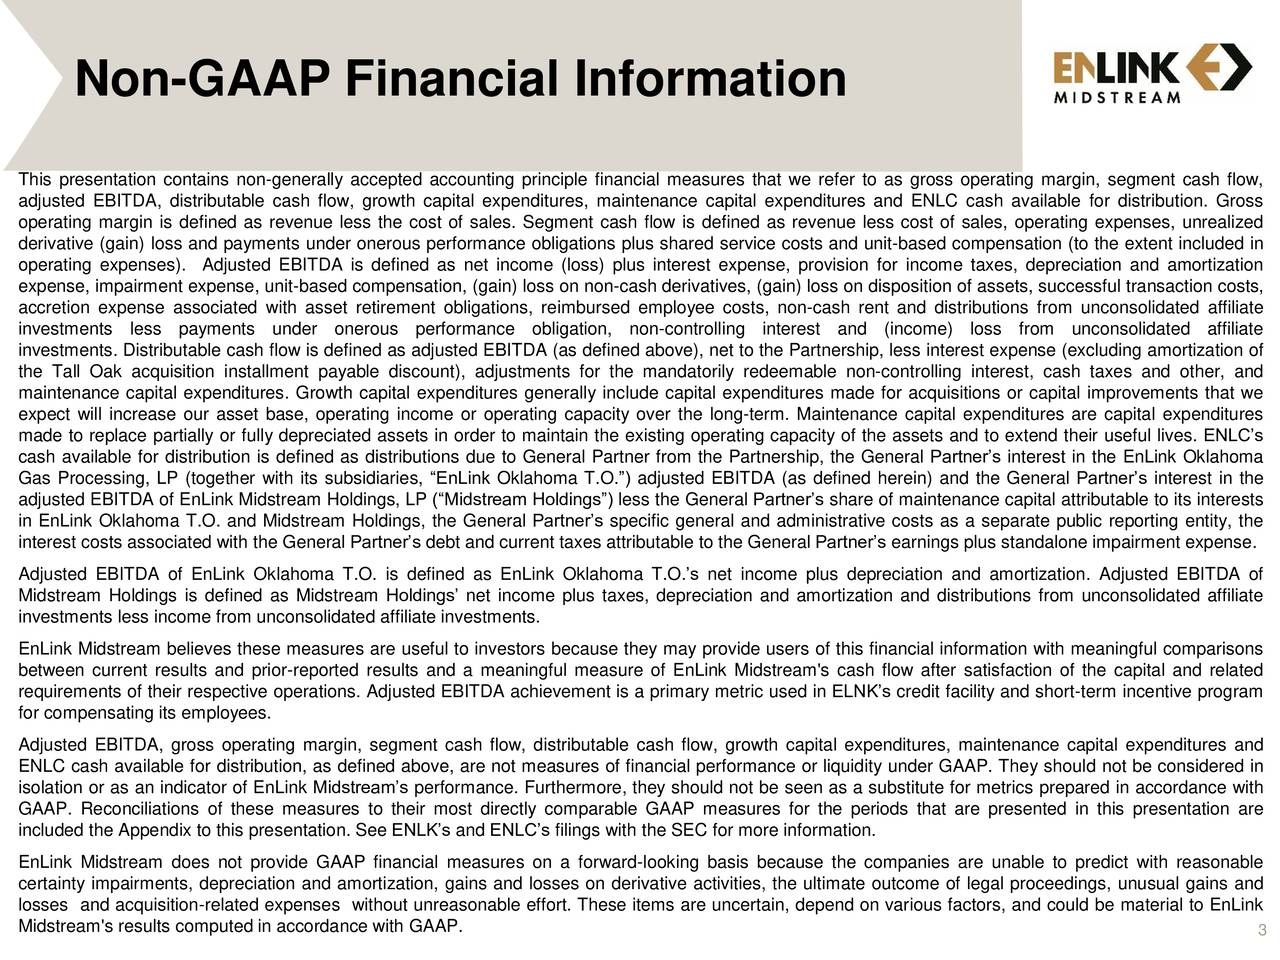 This presentation contains non-generally accepted accounting principle financial measures that we refer to as gross operating margin, segment cash flow, adjusted EBITDA, distributable cash flow, growth capital expenditures, maintenance capital expenditures and ENLC cash available for distribution. Gross operating margin is defined as revenue less the cost of sales. Segment cash flow is defined as revenue less cost of sales, operating expenses, unrealized derivative (gain) loss and payments under onerous performance obligations plus shared service costs and unit-based compensation (to the extent included in operating expenses). Adjusted EBITDA is defined as net income (loss) plus interest expense, provision for income taxes, depreciation and amortization expense, impairment expense, unit-based compensation, (gain) loss on non-cash derivatives, (gain) loss on disposition of assets, successful transaction costs, accretion expense associated with asset retirement obligations, reimbursed employee costs, non-cash rent and distributions from unconsolidated affiliate investments less payments under onerous performance obligation,non-controlling interest and (income) loss from unconsolidated affiliate investments. Distributable cash flow is defined as adjusted EBITDA (as defined above), net to the Partnership, less interest expense (excluding amortization of the Tall Oak acquisition installment payable discount), adjustments for the mandatorily redeemable non-controlling interest, cash taxes and other, and maintenance capital expenditures. Growth capital expenditures generally include capital expenditures made for acquisitions or capital improvements that we expect will increase our asset base, operating income or operating capacity over the long-term. Maintenance capital expenditures are capital expenditures made to replace partially or fully depreciated assets in order to maintain the existing operating capacity of the assets and to extend their useful lives. ENLCs cash available for distribution is defined as distributions due to General Partner from the Partnership, the General Partners interest in the EnLink Oklahoma Gas Processing, LP (together with its subsidiaries, EnLink Oklahoma T.O.) adjusted EBITDA (as defined herein) and the General Partners interest in the adjusted EBITDA of EnLink Midstream Holdings, LP (Midstream Holdings) less the General Partners share of maintenance capital attributable to its interests in EnLink Oklahoma T.O. and Midstream Holdings, the General Partners specific general and administrative costs as a separate public reporting entity, the interest costs associated with the General Partners debt and current taxes attributable to the General Partners earnings plus standalone impairment expense. Adjusted EBITDA of EnLink Oklahoma T.O. is defined as EnLink Oklahoma T.O.s net income plus depreciation and amortization. Adjusted EBITDA of Midstream Holdings is defined as Midstream Holdings net income plus taxes, depreciation and amortization and distributions from unconsolidated affiliate investments less income from unconsolidated affiliate investments. EnLink Midstream believes these measures are useful to investors because they may provide users of this financial information with meaningful comparisons between current results and prior-reported results and a meaningful measure of EnLink Midstream's cash flow after satisfaction of the capital and related requirements of their respective operations. Adjusted EBITDA achievement is a primary metric used in ELNKs credit facility and short-term incentive program for compensating its employees. Adjusted EBITDA, gross operating margin, segment cash flow, distributable cash flow, growth capital expenditures, maintenance capital expenditures and ENLC cash available for distribution, as defined above, are not measures of financial performance or liquidity under GAAP. They should not be considered in isolation or as an indicator of EnLink Midstreams performance. Furthermore, they should not be seen as a substitute for metrics prepared in accordance with GAAP. Reconciliations of these measures to their most directly comparable GAAP measures for the periods that are presented in this presentation are included the Appendix to this presentation. See ENLKs and ENLCs filings with the SEC for more information. EnLink Midstream does not provide GAAP financial measures on a forward-looking basis because the companies are unable to predict with reasonable certainty impairments, depreciation and amortization, gains and losses on derivative activities, the ultimate outcome of legal proceedings, unusual gains and losses and acquisition-related expenses without unreasonable effort. These items are uncertain, depend on various factors, and could be material to EnLink Midstream's results computed in accordance with GAAP. 3